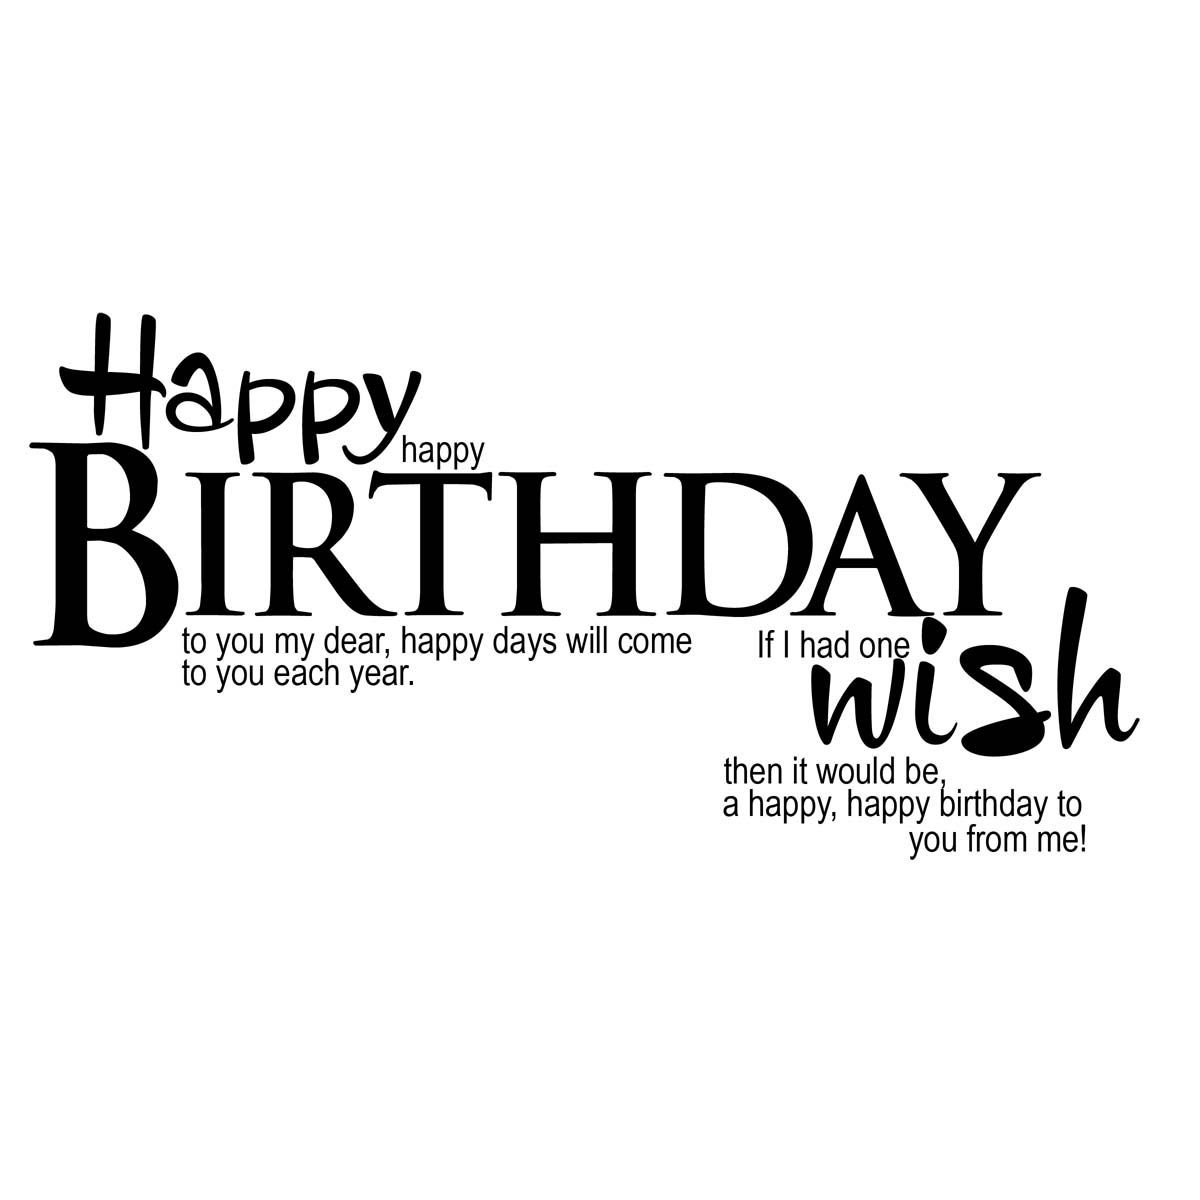 Funny happy birthday quotes studentschillout funny happy birthday wishes quotes m4hsunfo